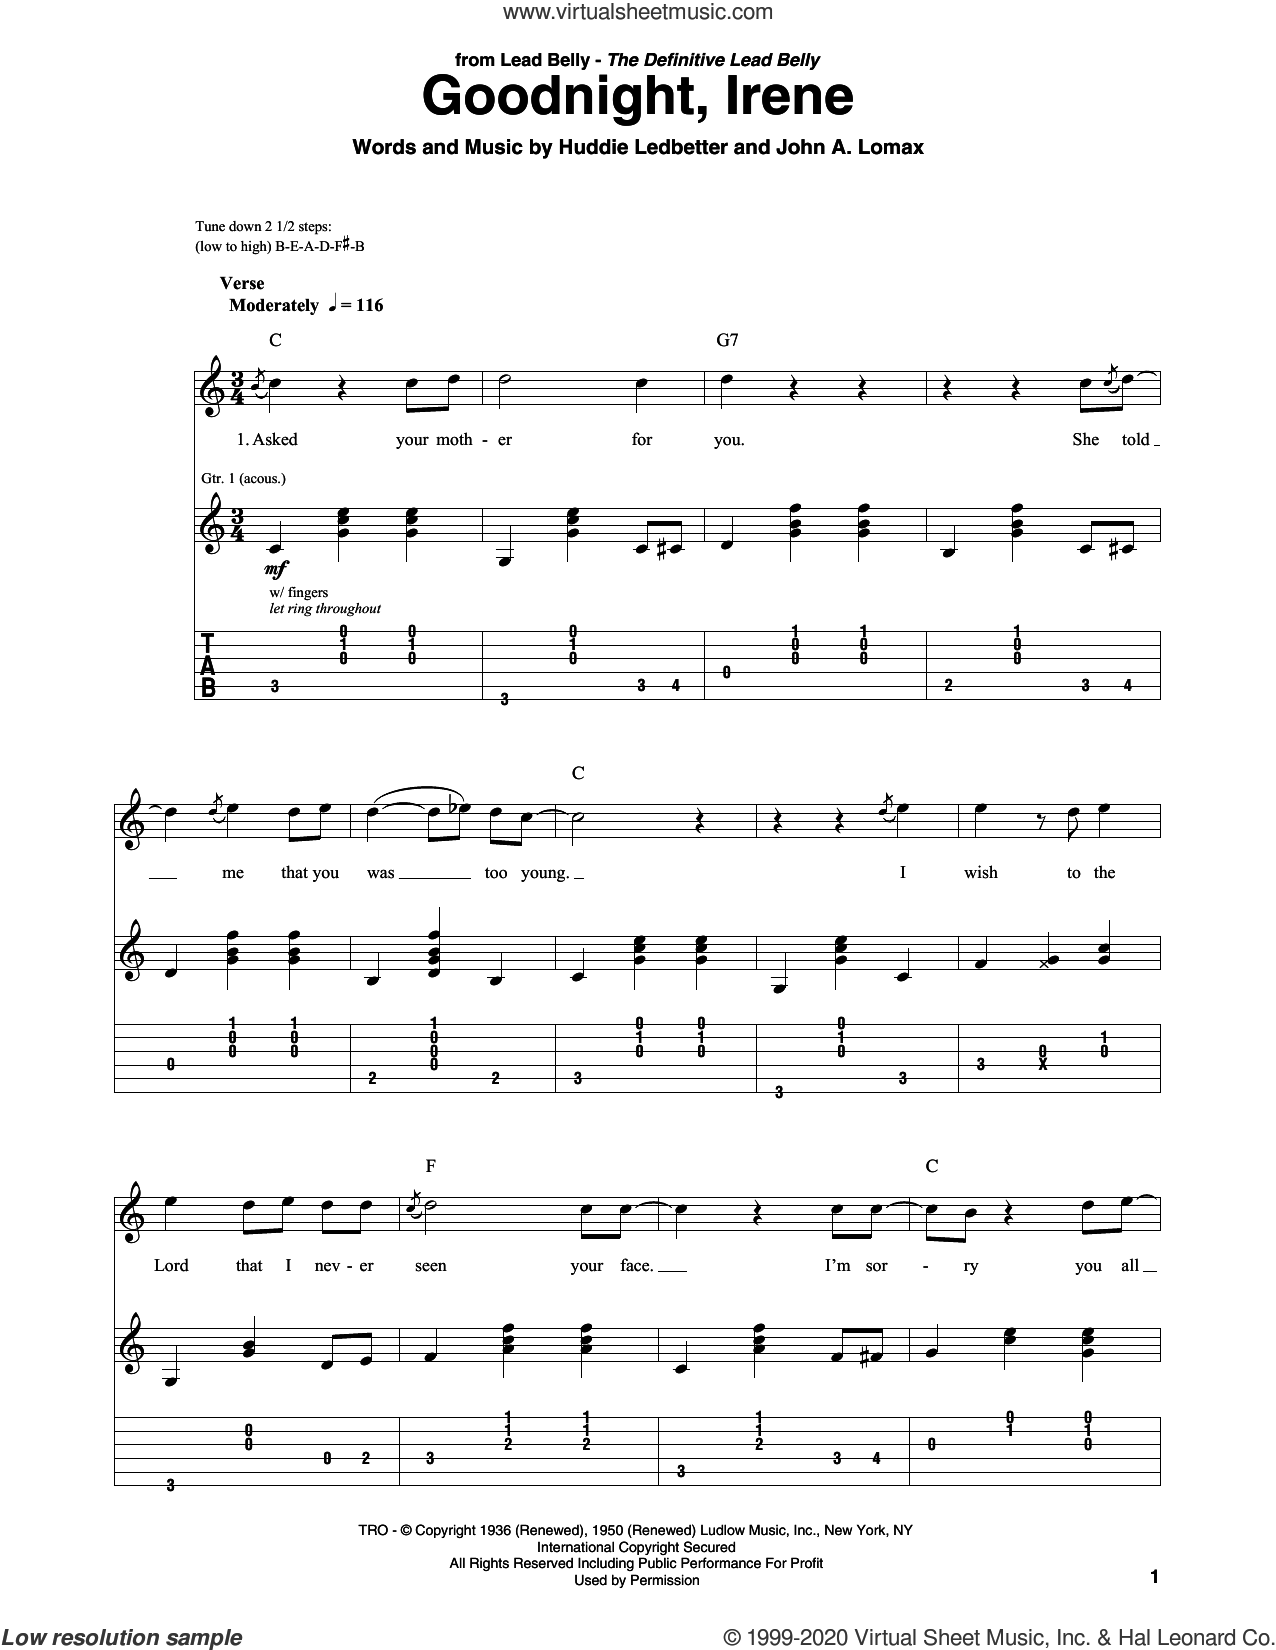 Goodnight, Irene sheet music for guitar solo by Peter, Paul & Mary, Ernest Tubb & Red Foley, Johnny Cash, Huddie Ledbetter and John A. Lomax, intermediate skill level